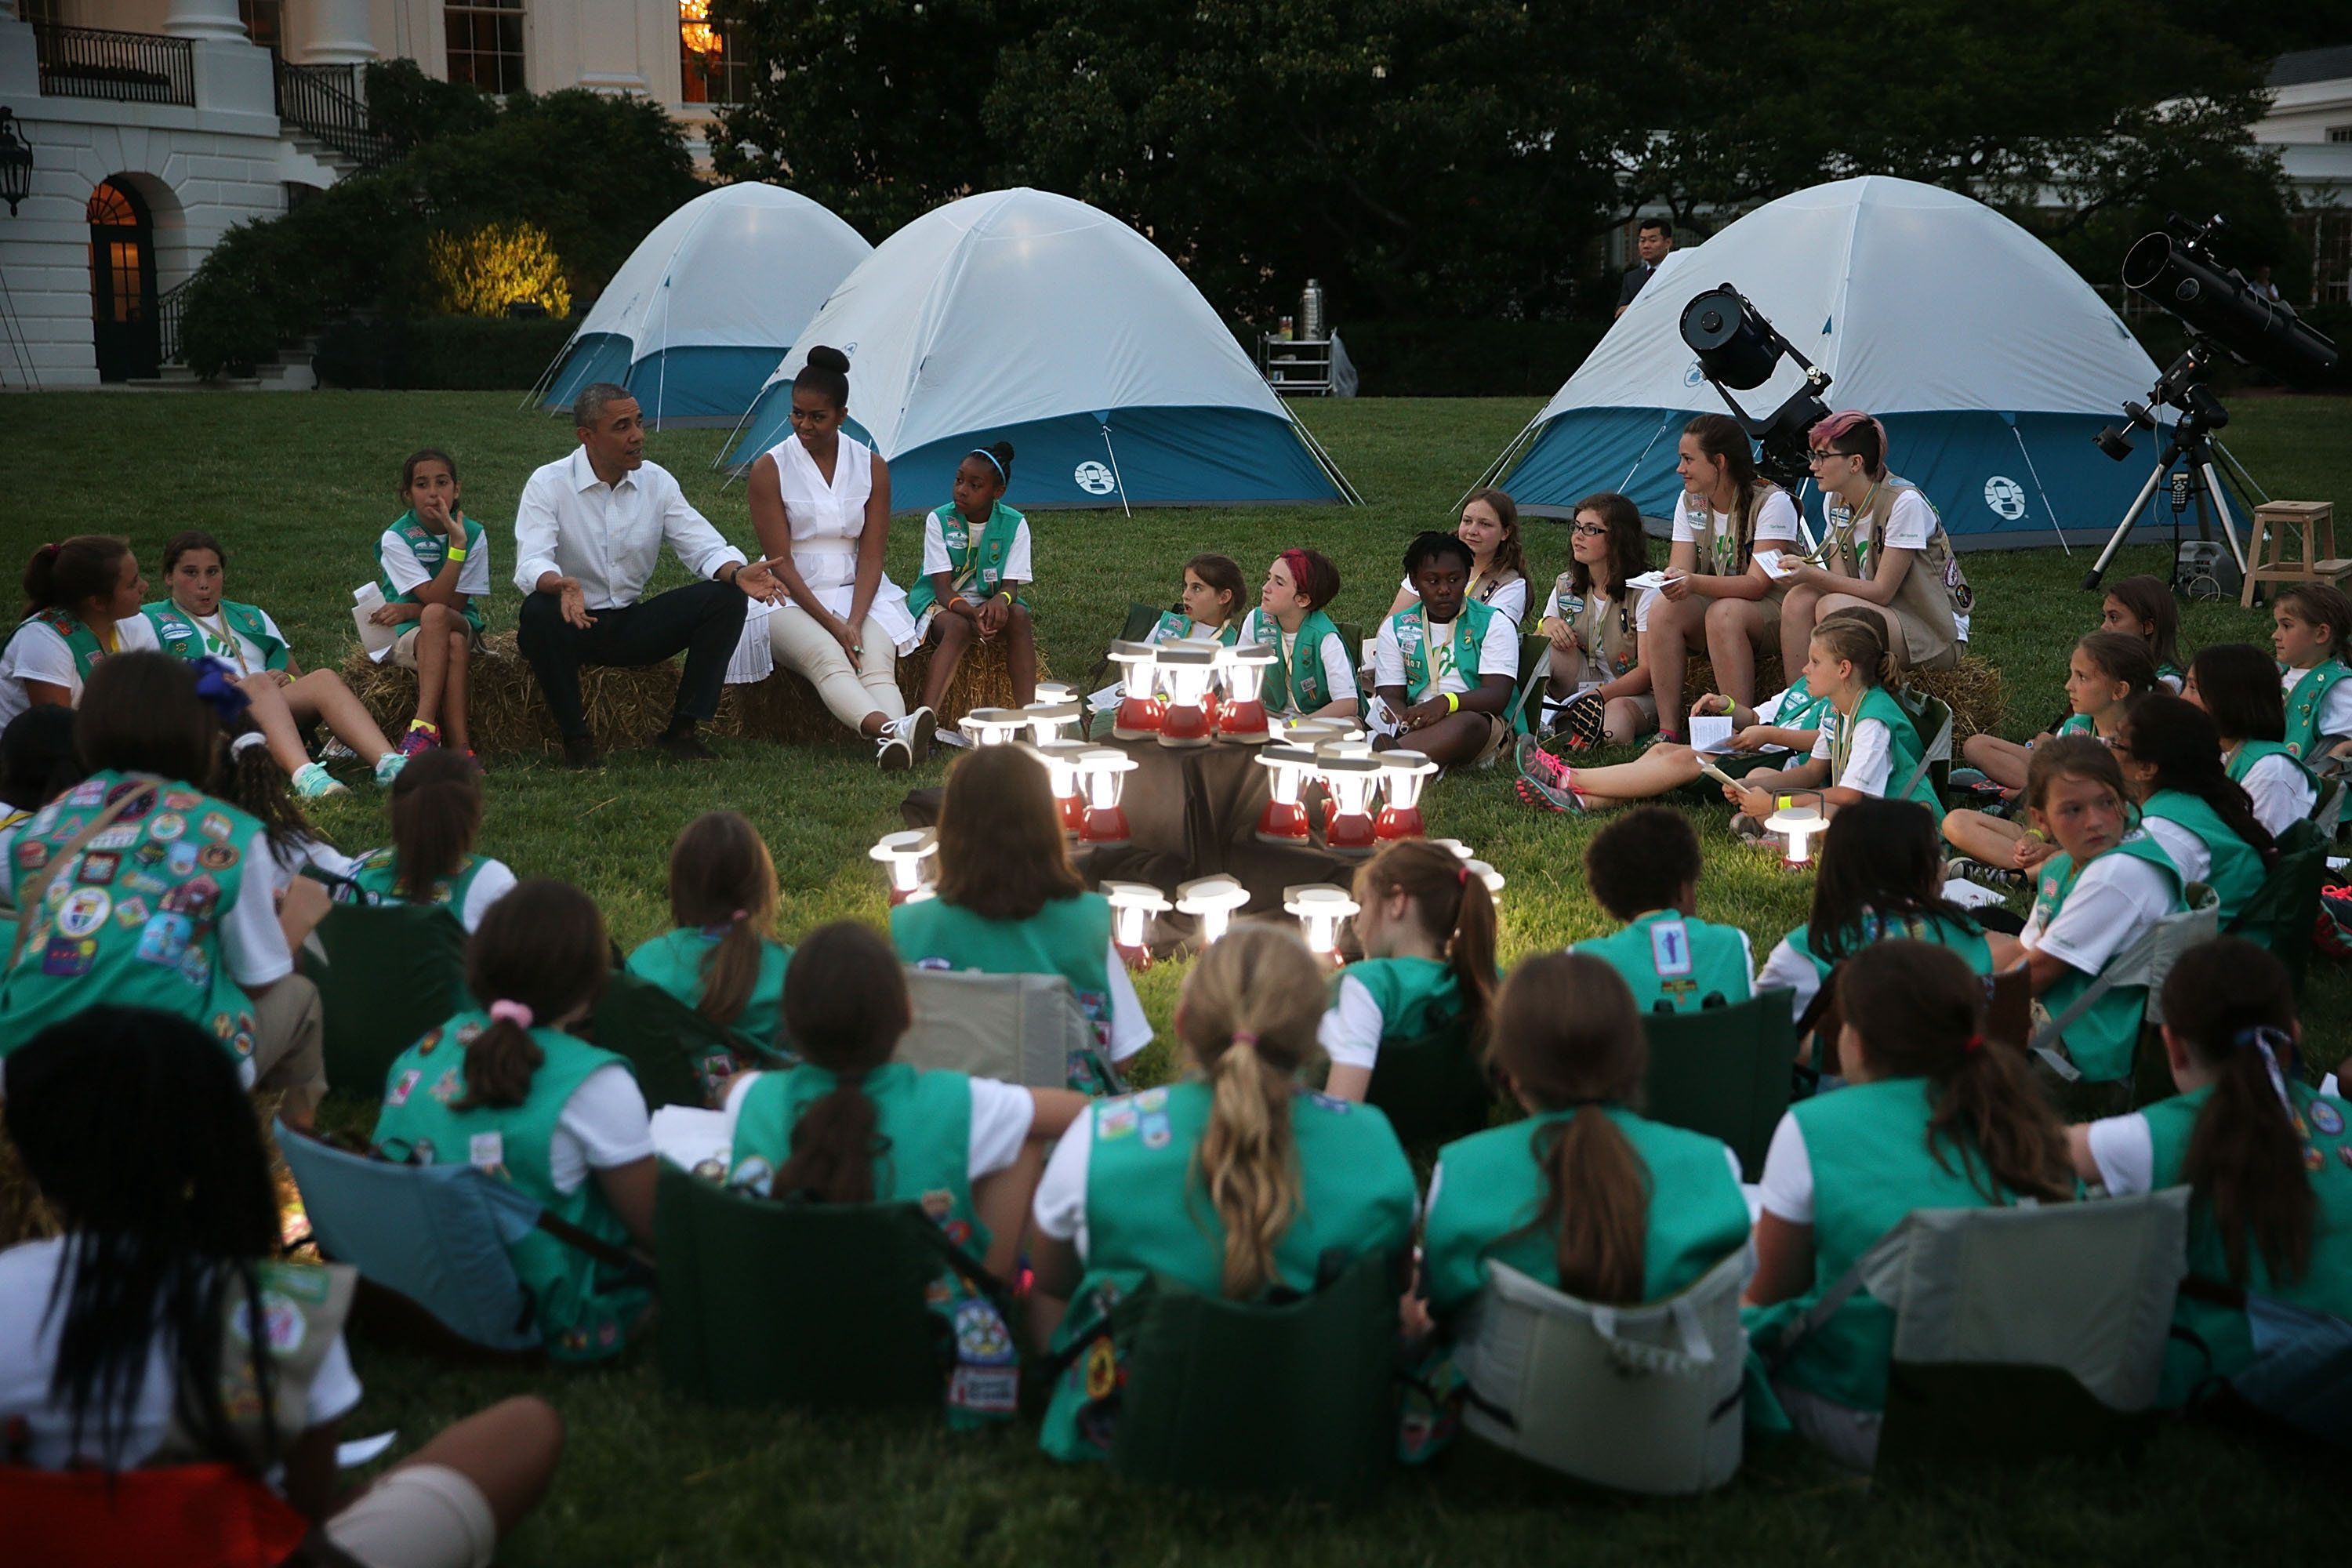 WASHINGTON, DC - JUNE 30:  U.S. President Barack Obama and first lady Michelle Obama particiapte in campfire songs session with fourth-grade Girl Scouts during the first-ever White House Campout June 30, 2015 at South Lawn of the White House in Washington, DC. The first lady hosted the event, as part of her Let's Move! Outside initiative, for Girl Scouts to participate in activities to earn their Camper Badge, and to celebrate the release of the new Girls' Choice Outdoor badges.  (Photo by Alex Wong/Getty Images)